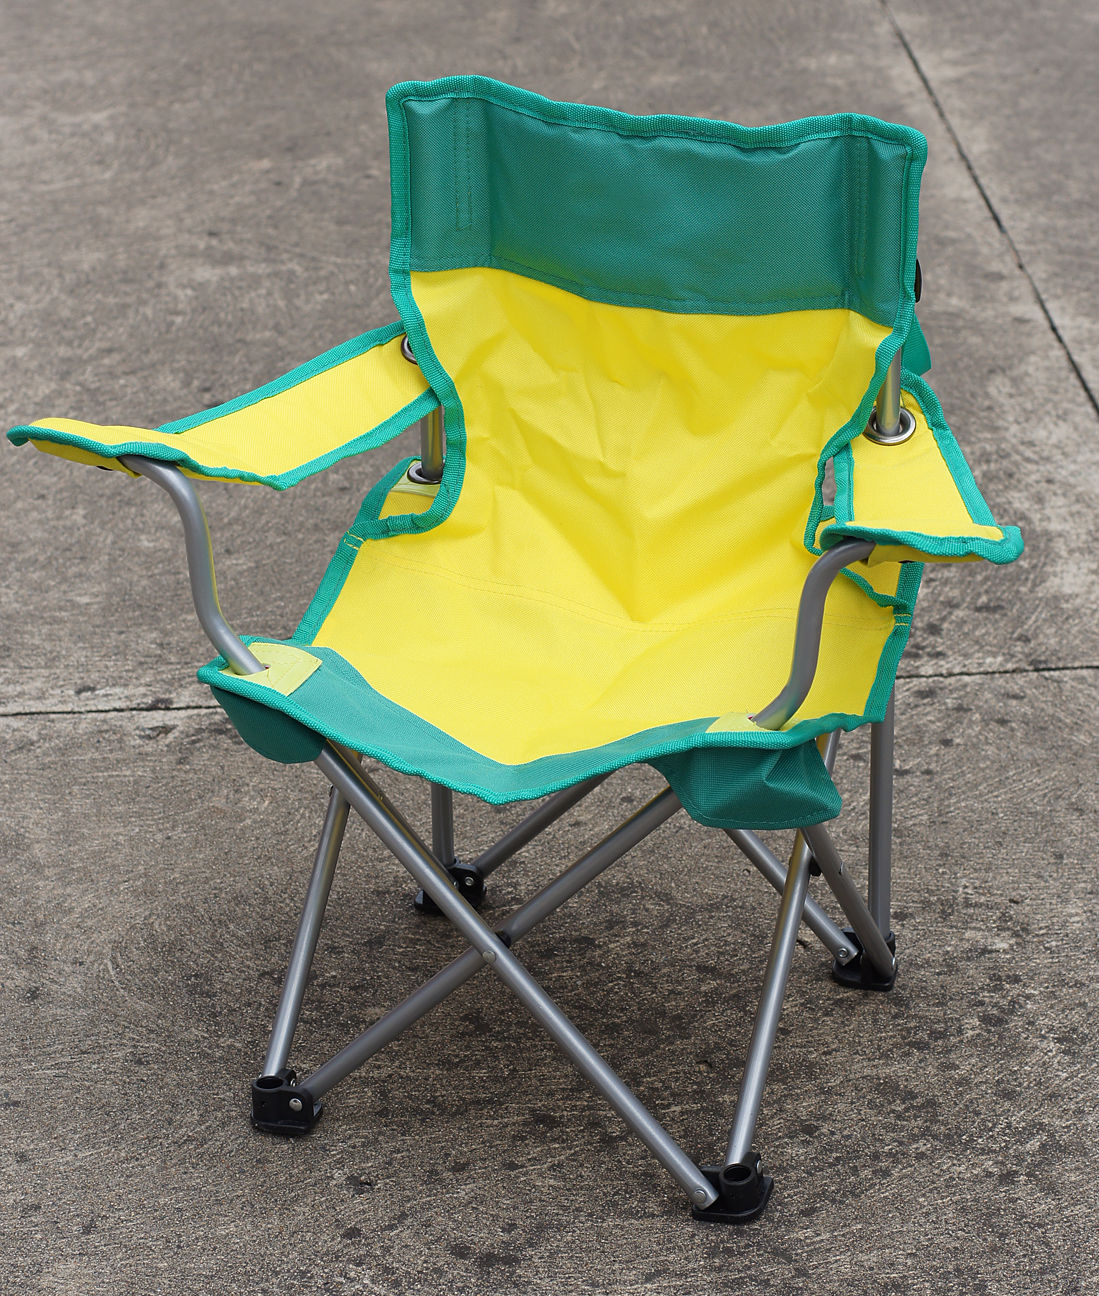 Kids Folding Chair Kids Folding Chair With Arms Foldable Light Outdoor